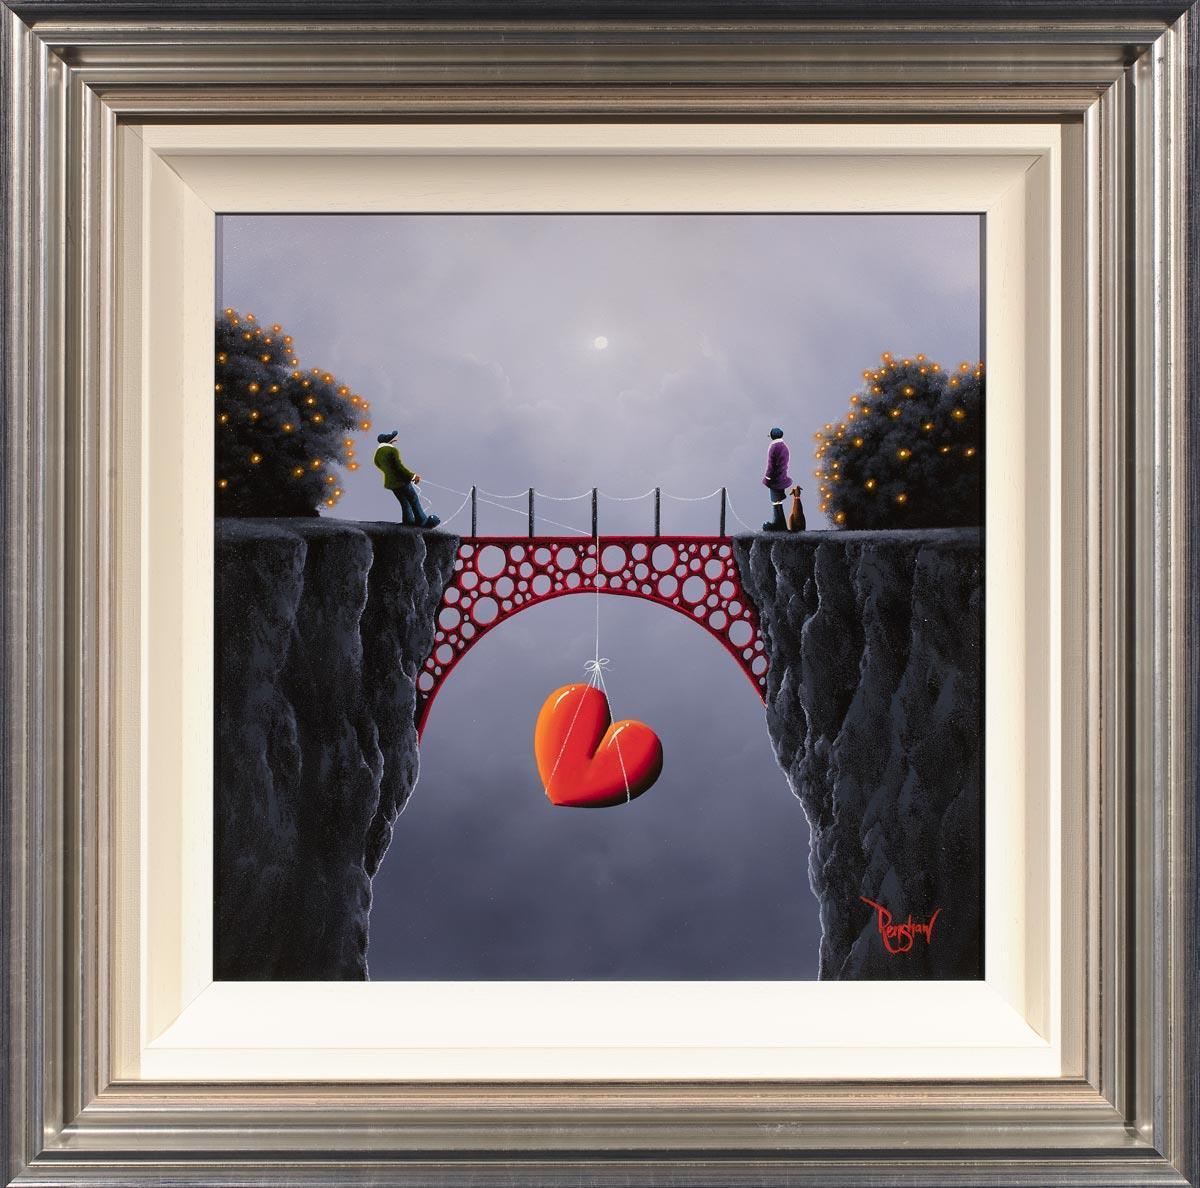 Heart Strings David Renshaw Framed